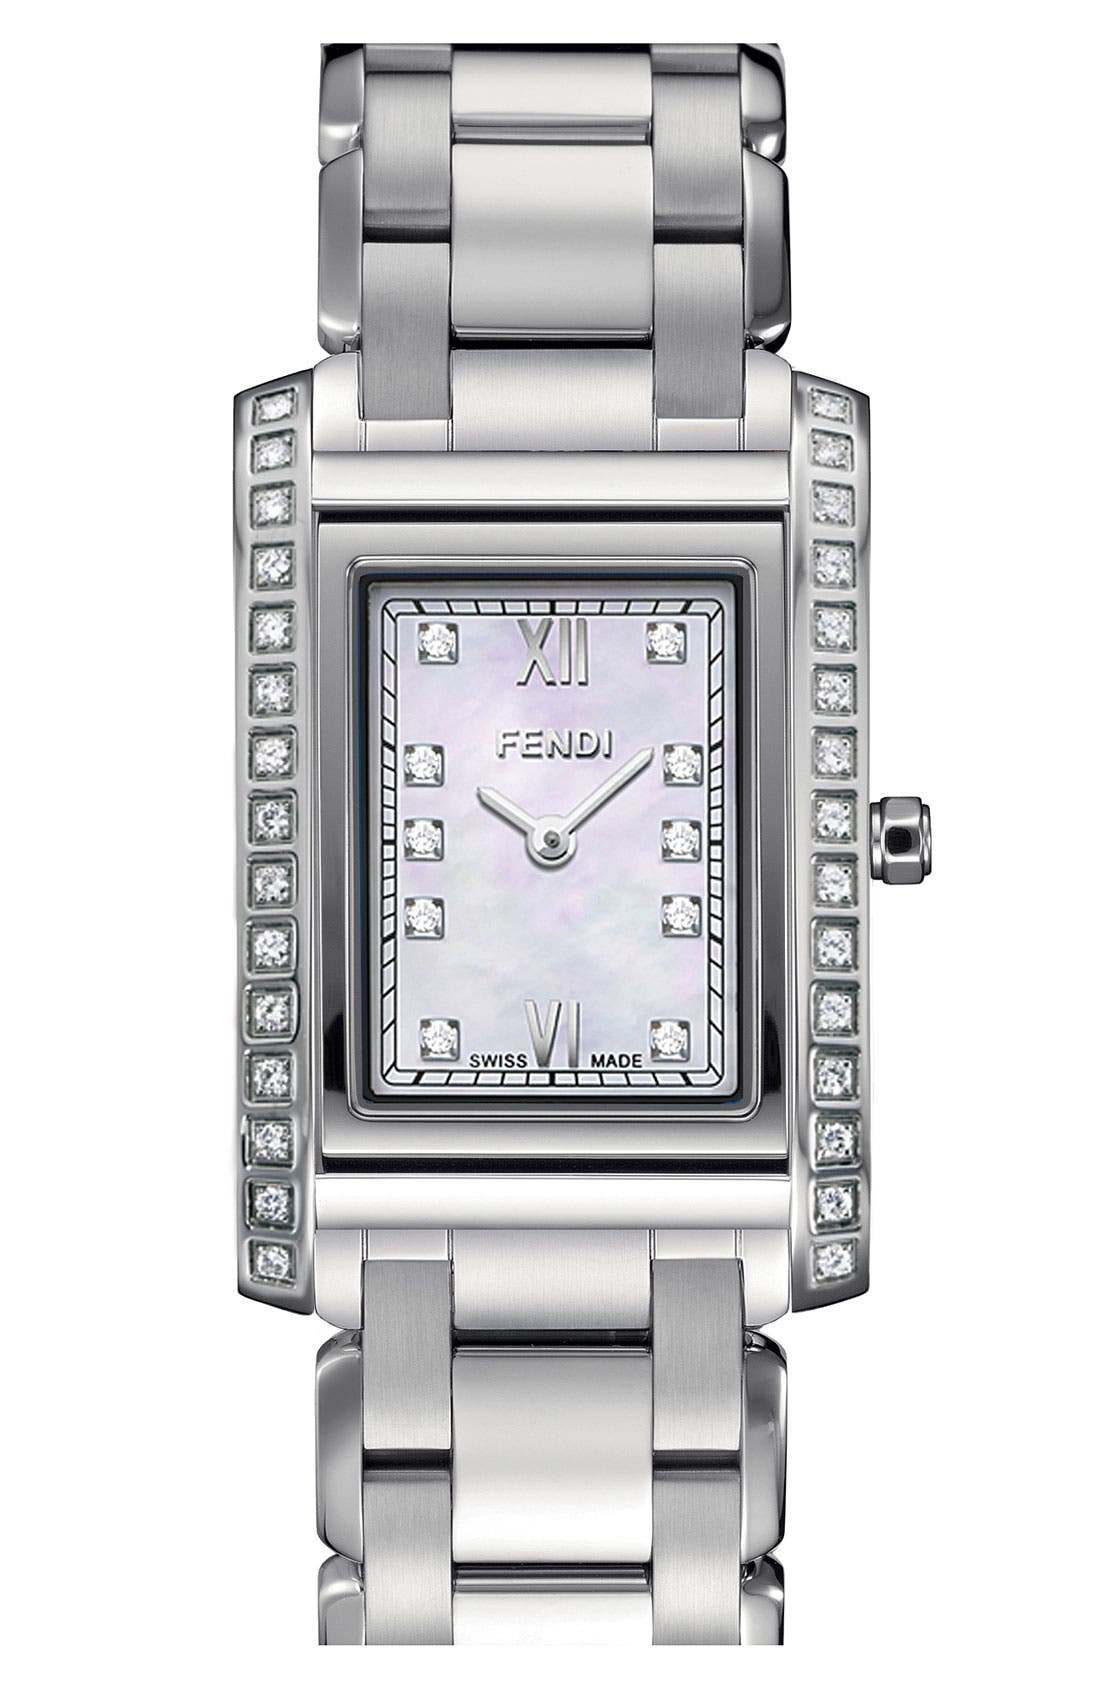 Alternate Image 1 Selected - Fendi 'Loop - Medium' Diamond Bracelet Watch, 27mm x 40mm